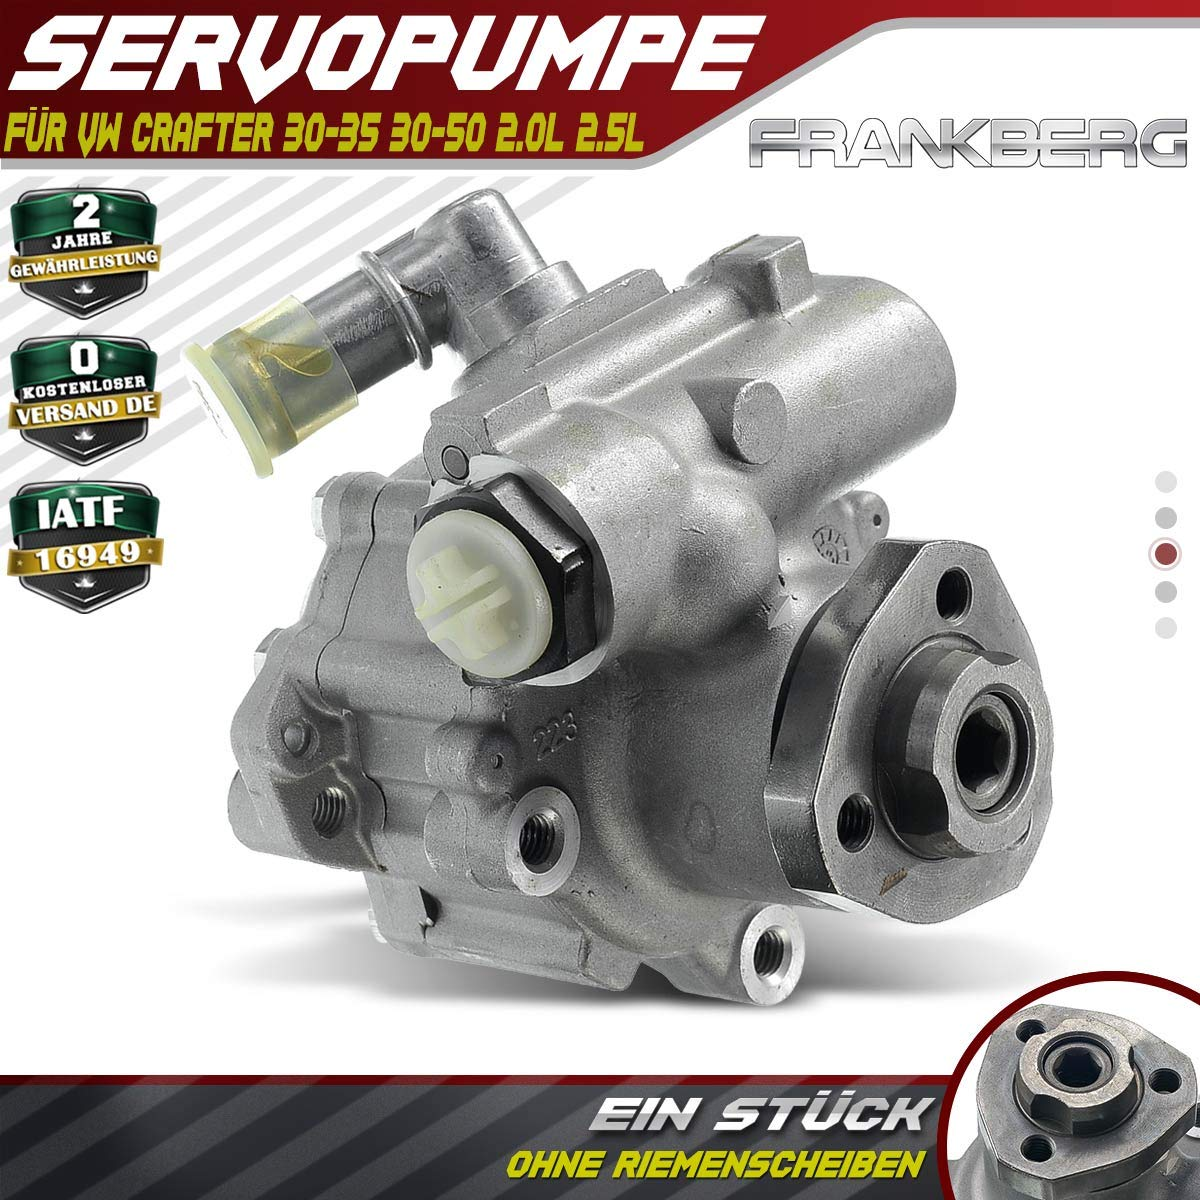 2E0422155A Servo Pump Power Steering Hydraulic Pump for Amarok Crafter 2H/_ S1B 2006-2018